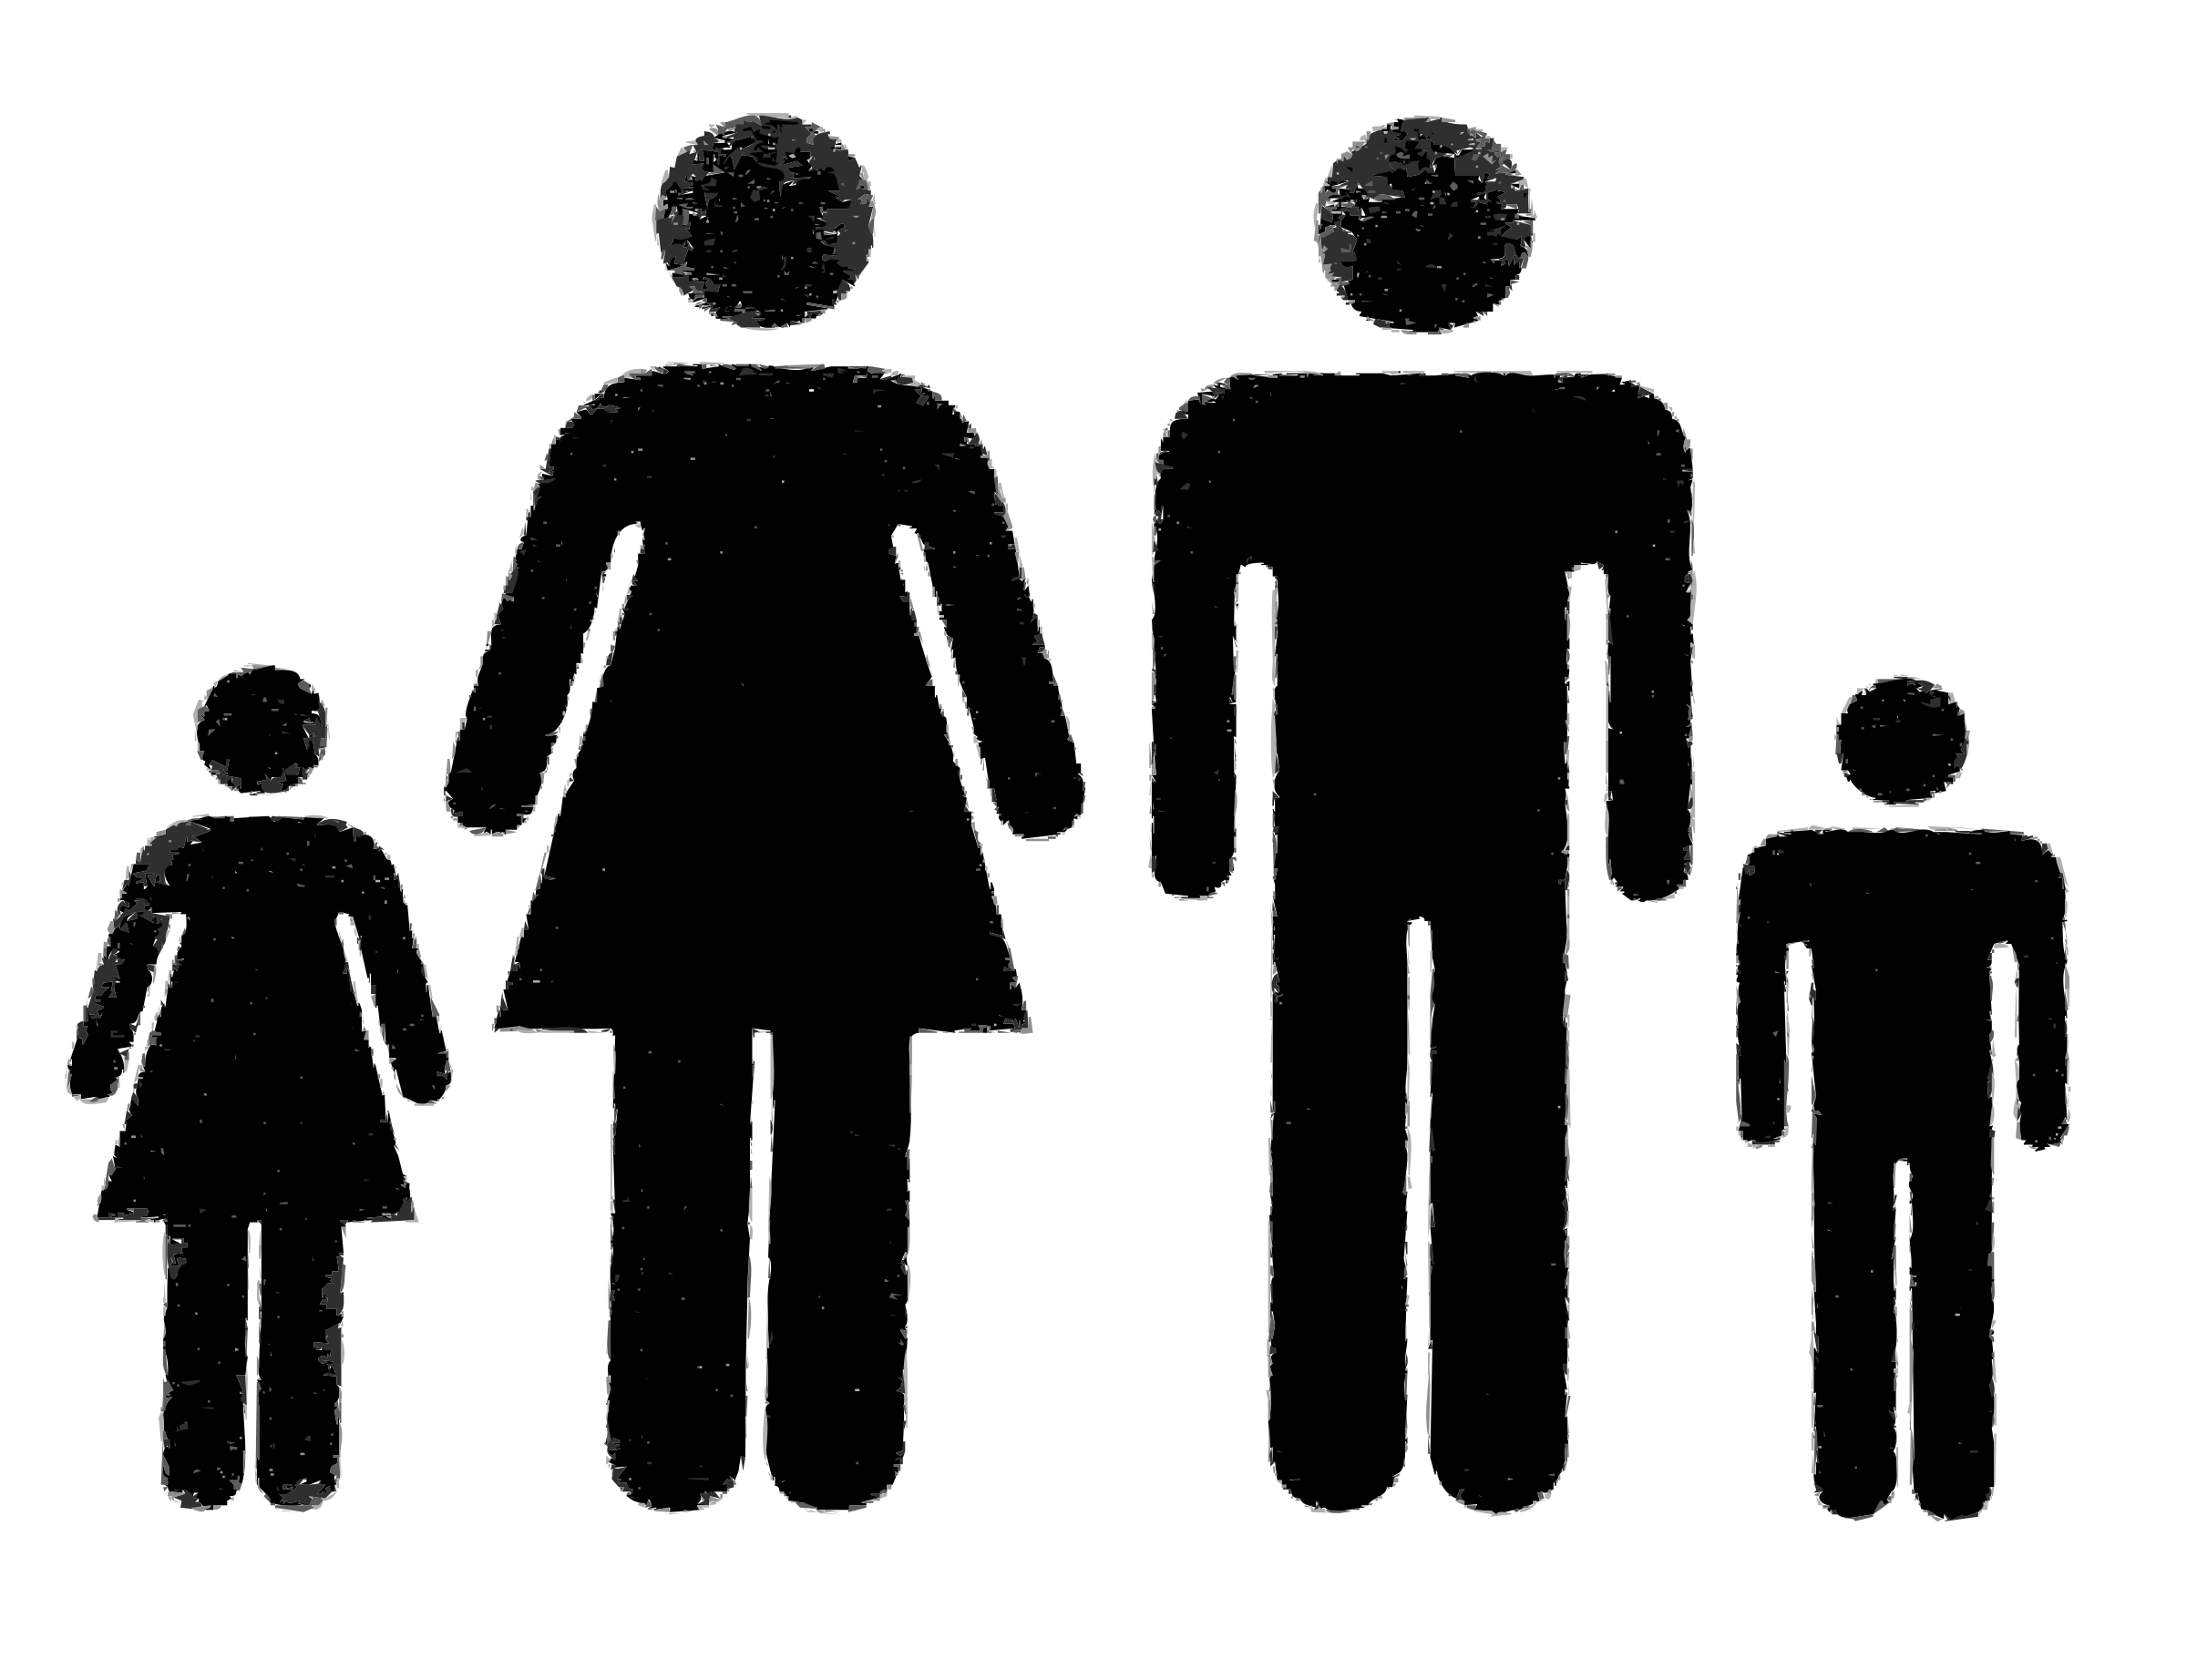 Clipart images of people vector royalty free library Family of people Vector Clipart image - Free stock photo - Public ... vector royalty free library